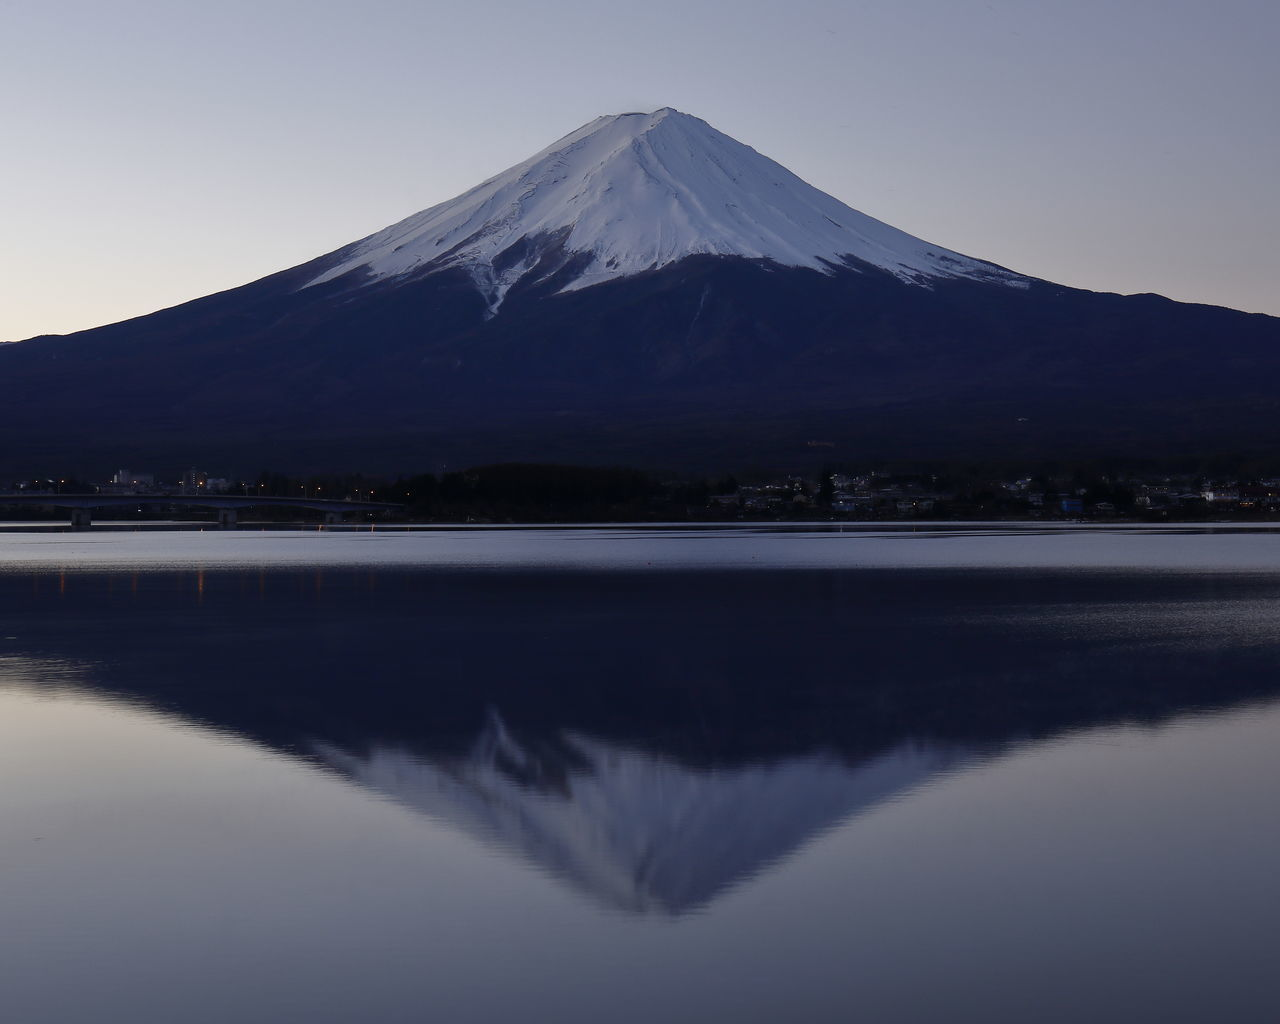 Beauty In Nature Fujisan Japan Japan Photography Lake Lake View Landscape Landscape_Collection Landscape_photography Mountain Mountian View Mt.Fuji Nature Nature Photography Nature_collection Reflection Scenics Snow Symmetrical Symmetry Tranquil Scene Volcano Water Water Reflections Water_collection Finding New Frontiers